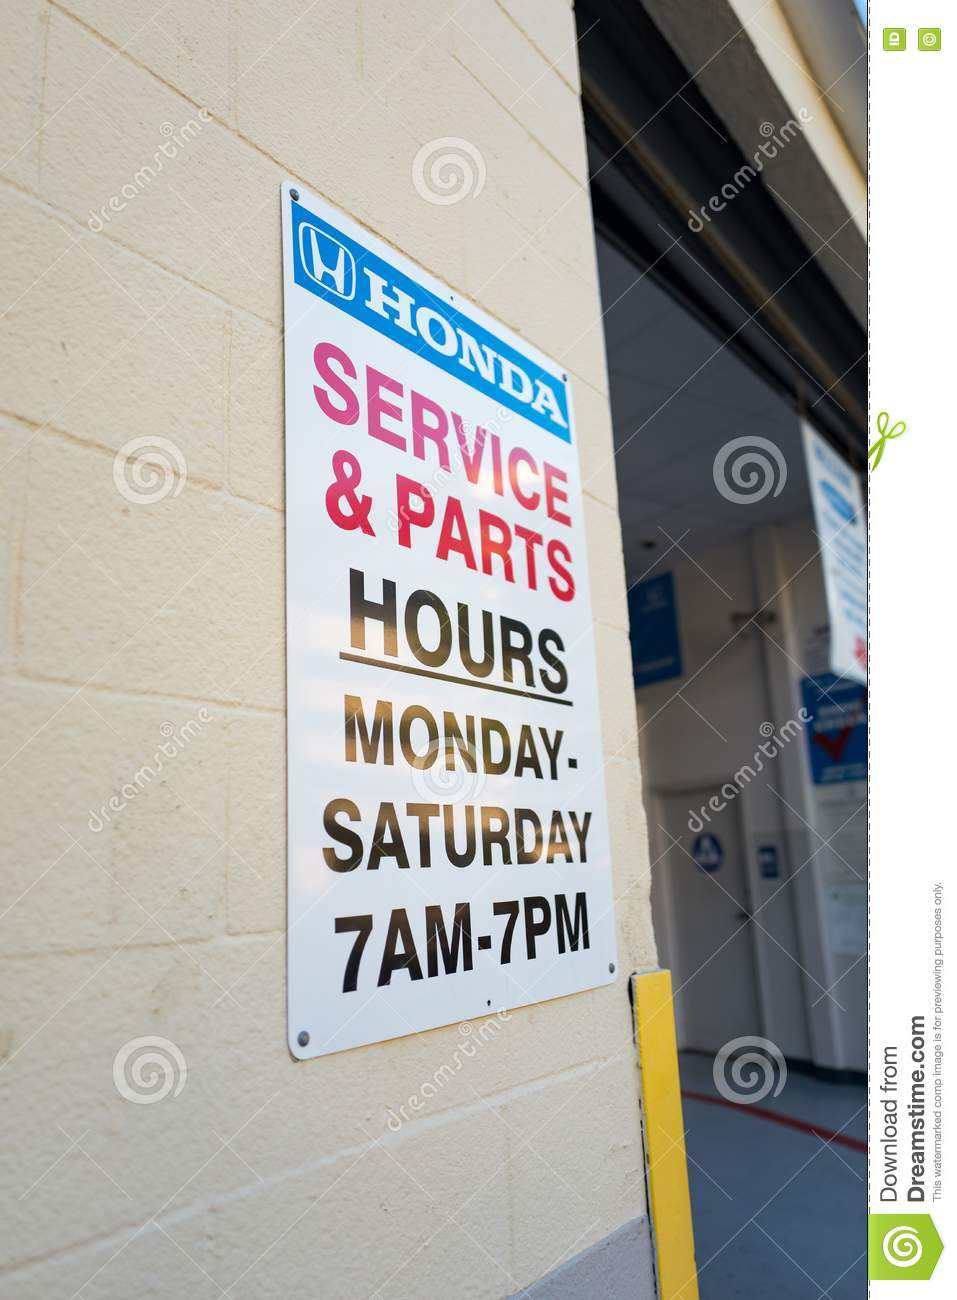 Walnut Creek, United States   September 21, 2016: Sign For A Honda  Automotive Service Center In The San Francisco Bay Area Town Of Walnut  Creek, California